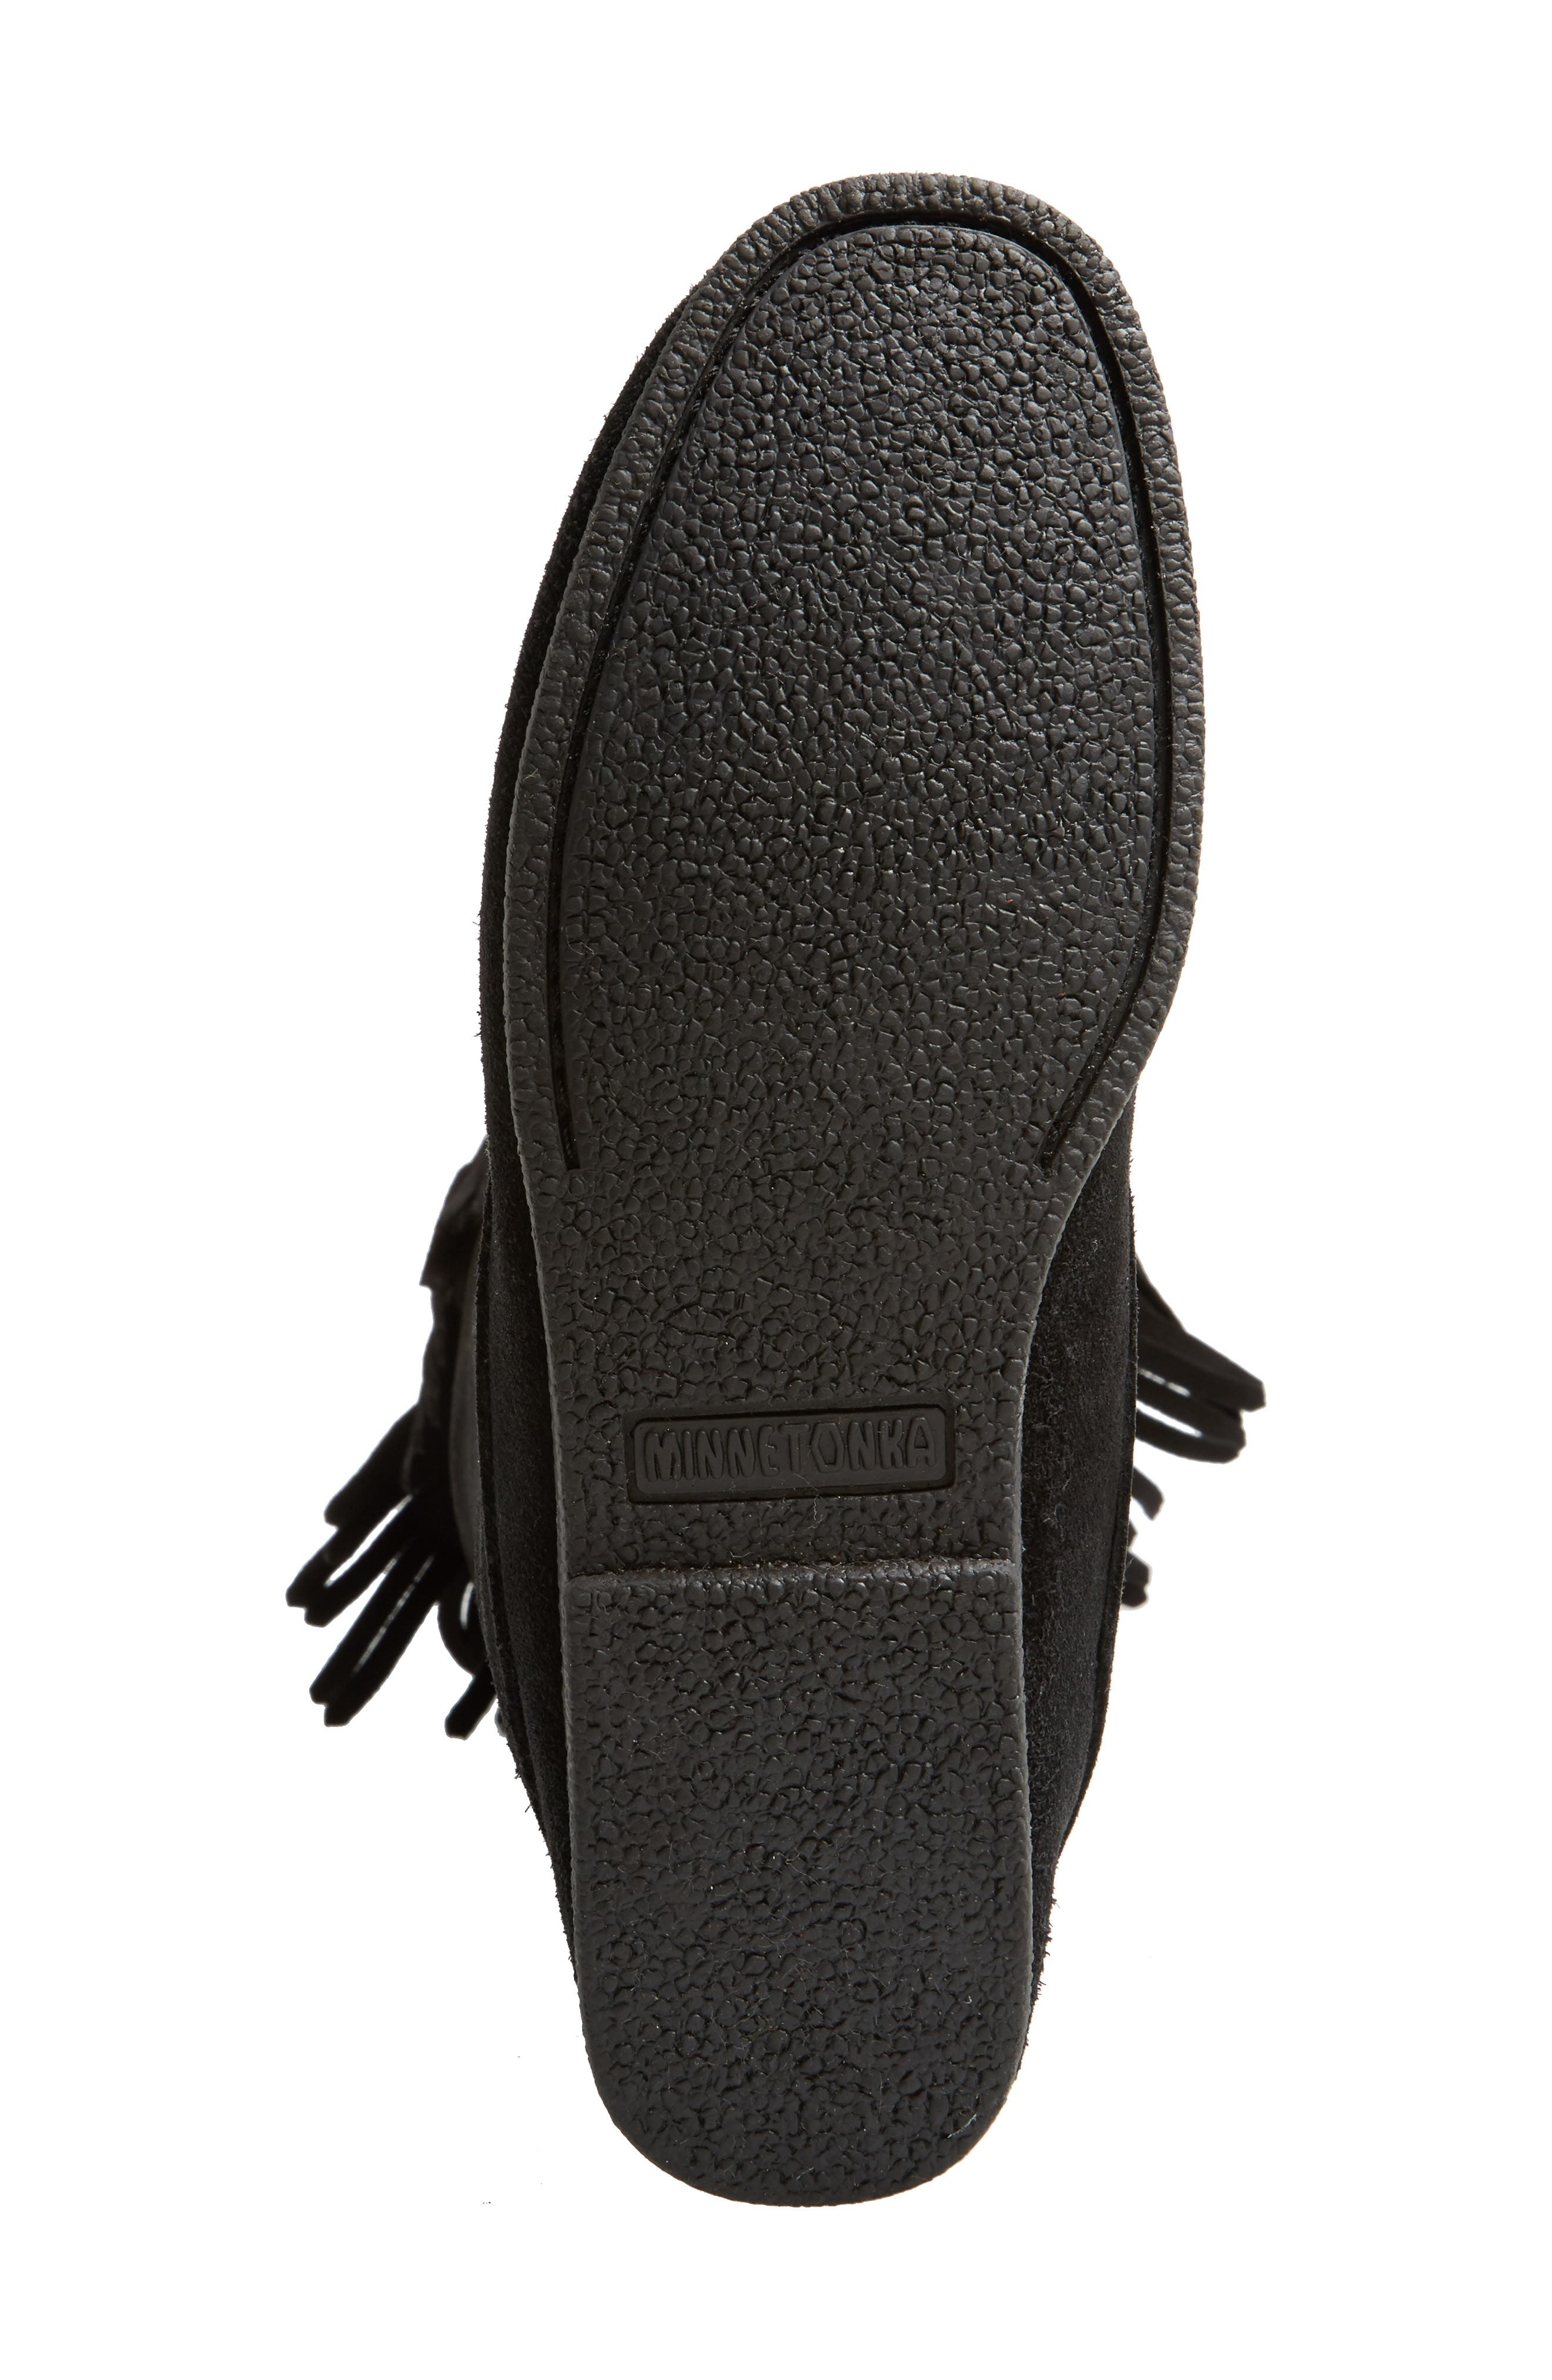 Knee High Moccasin Boot,                             Alternate thumbnail 6, color,                             BLACK SUEDE